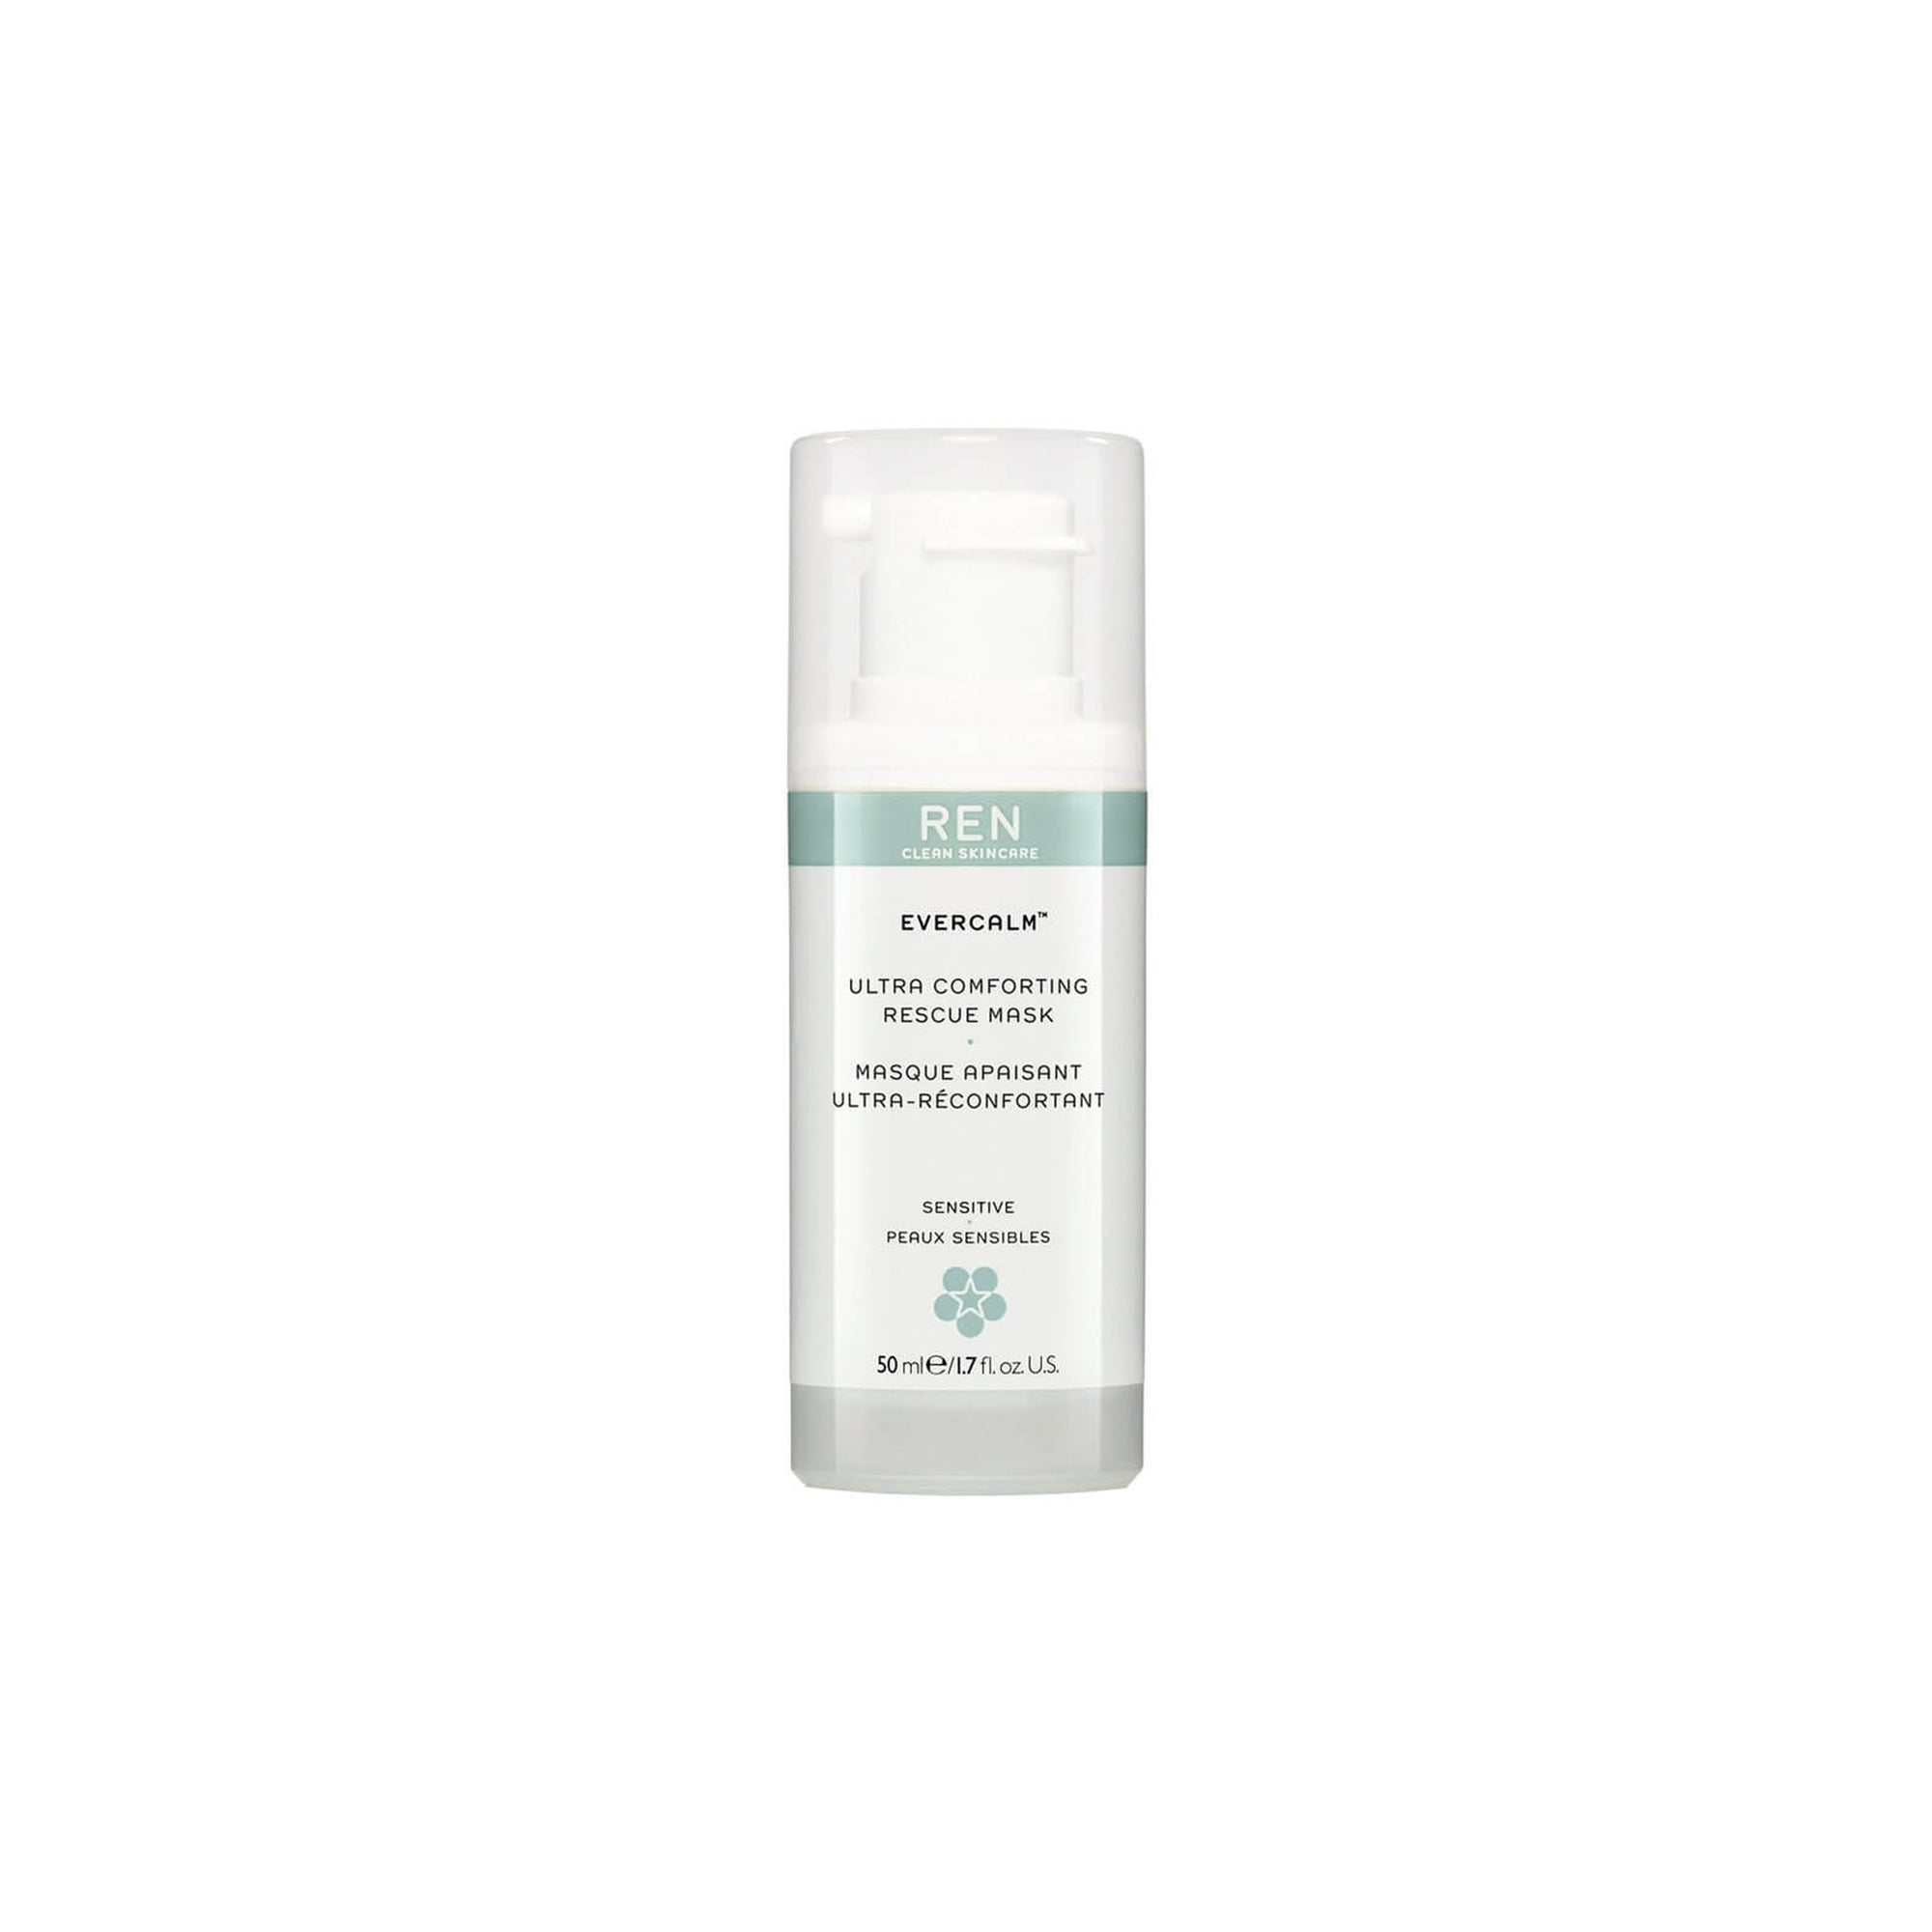 Ren Evercalm Ultra Comforting Rescue Mask 30ml